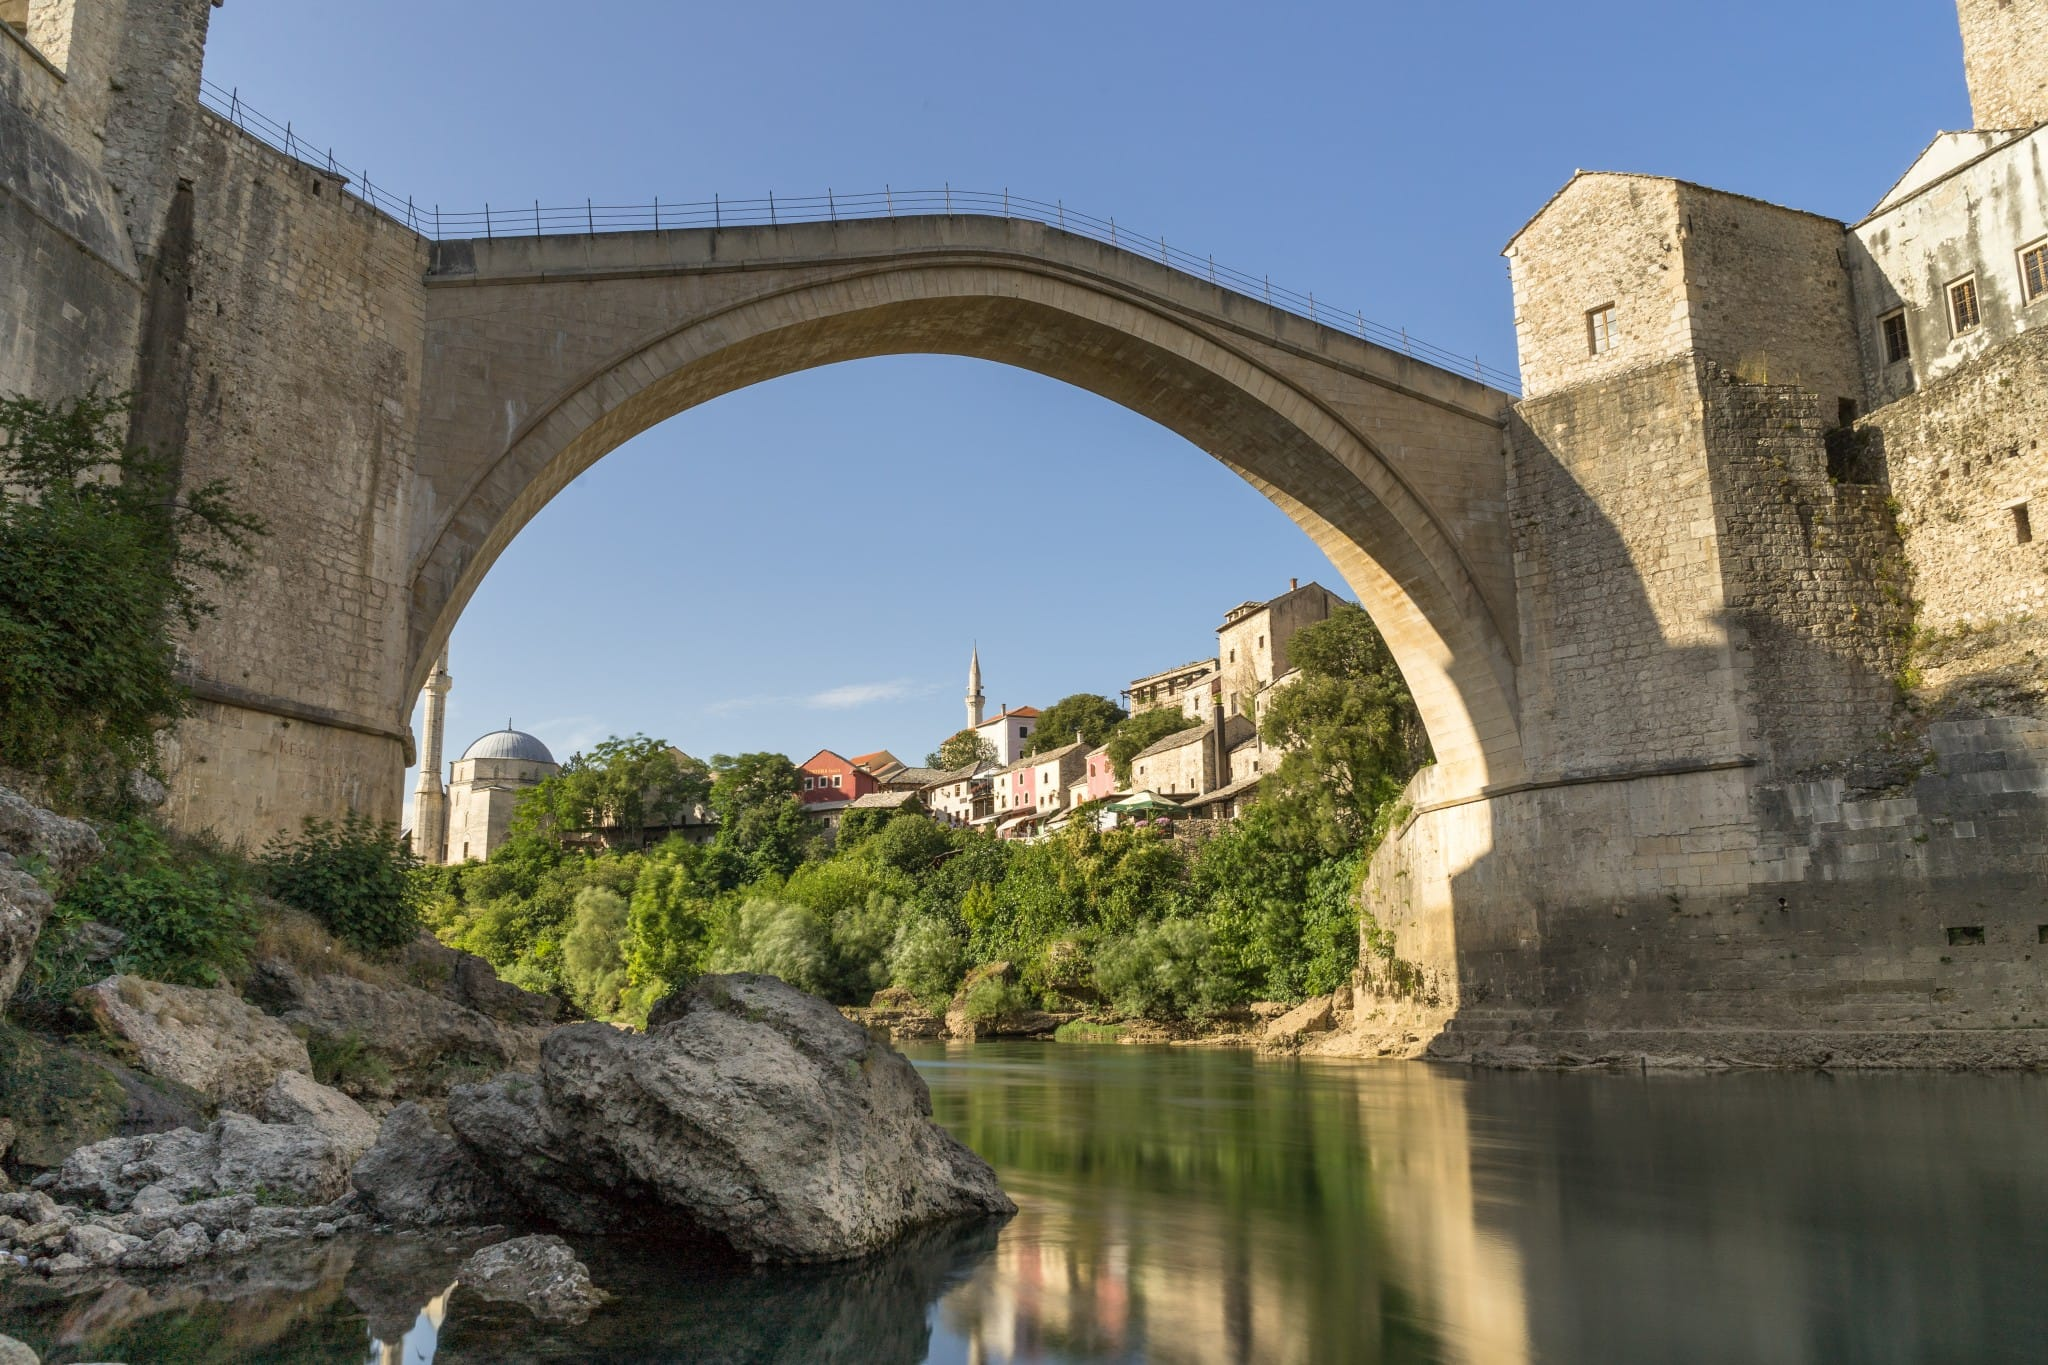 The Old Bridge - Mostar